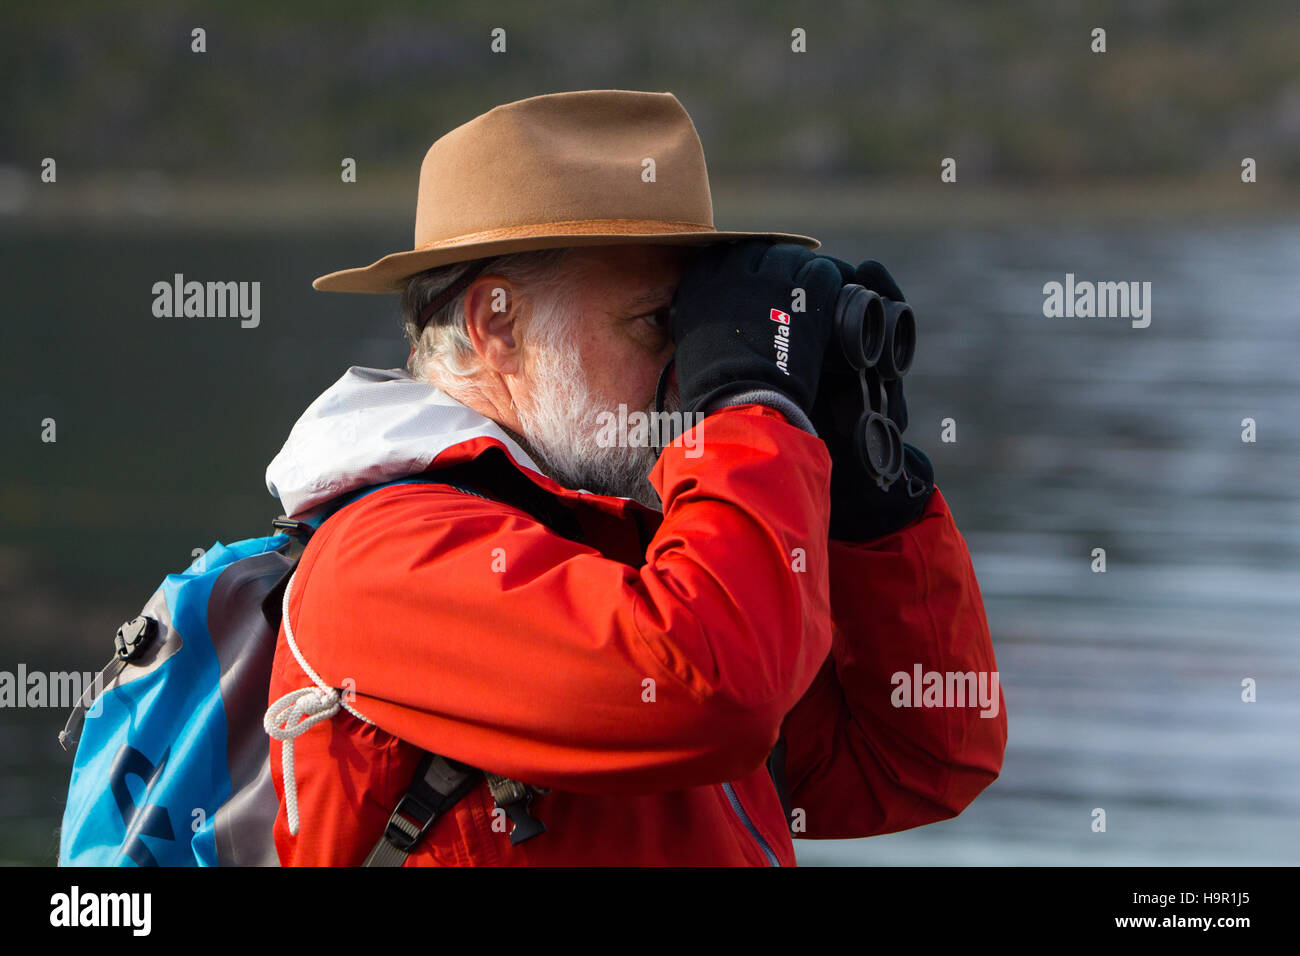 A nature tourist looking through his binoculars at birds wearing a bright red coat - Stock Image